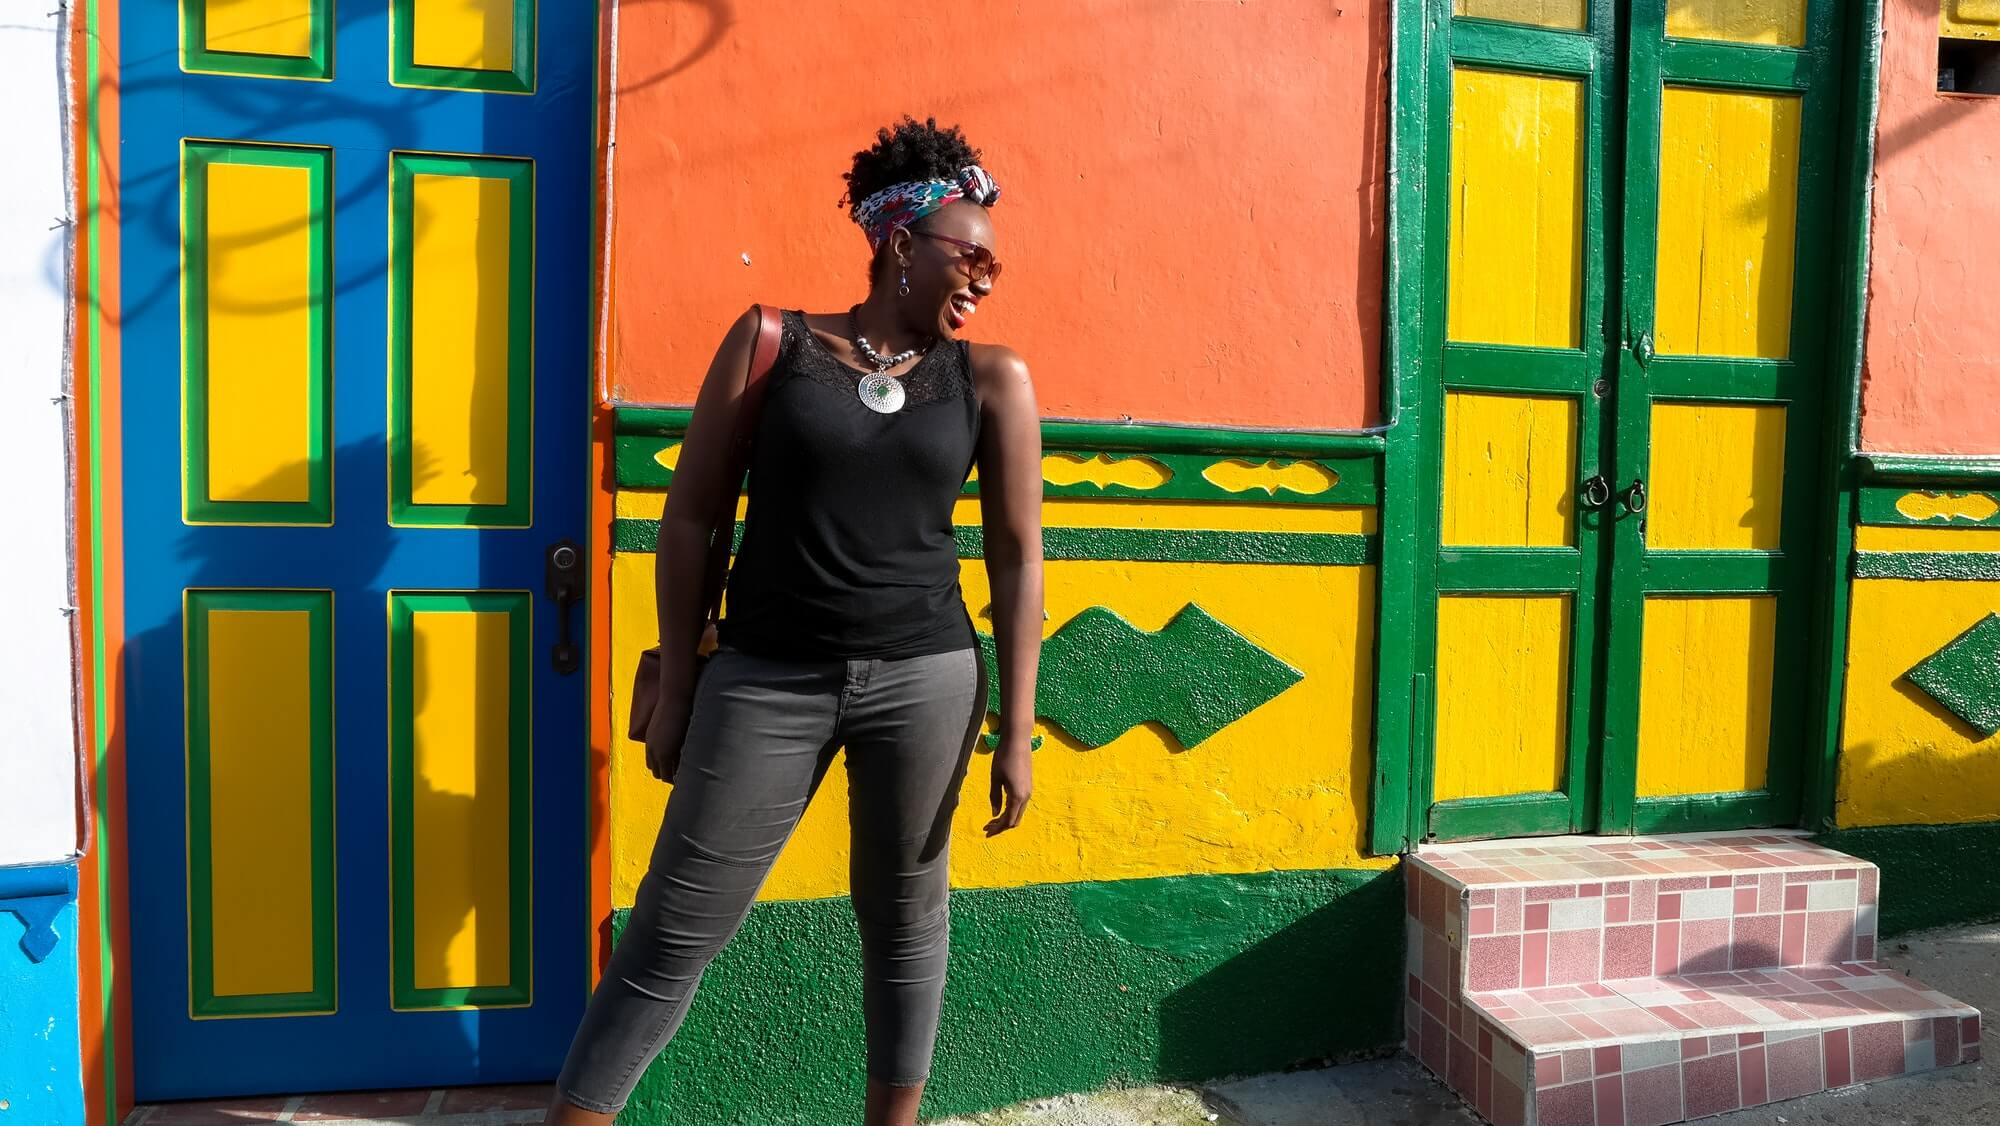 Black Woman Against Colorful Wall